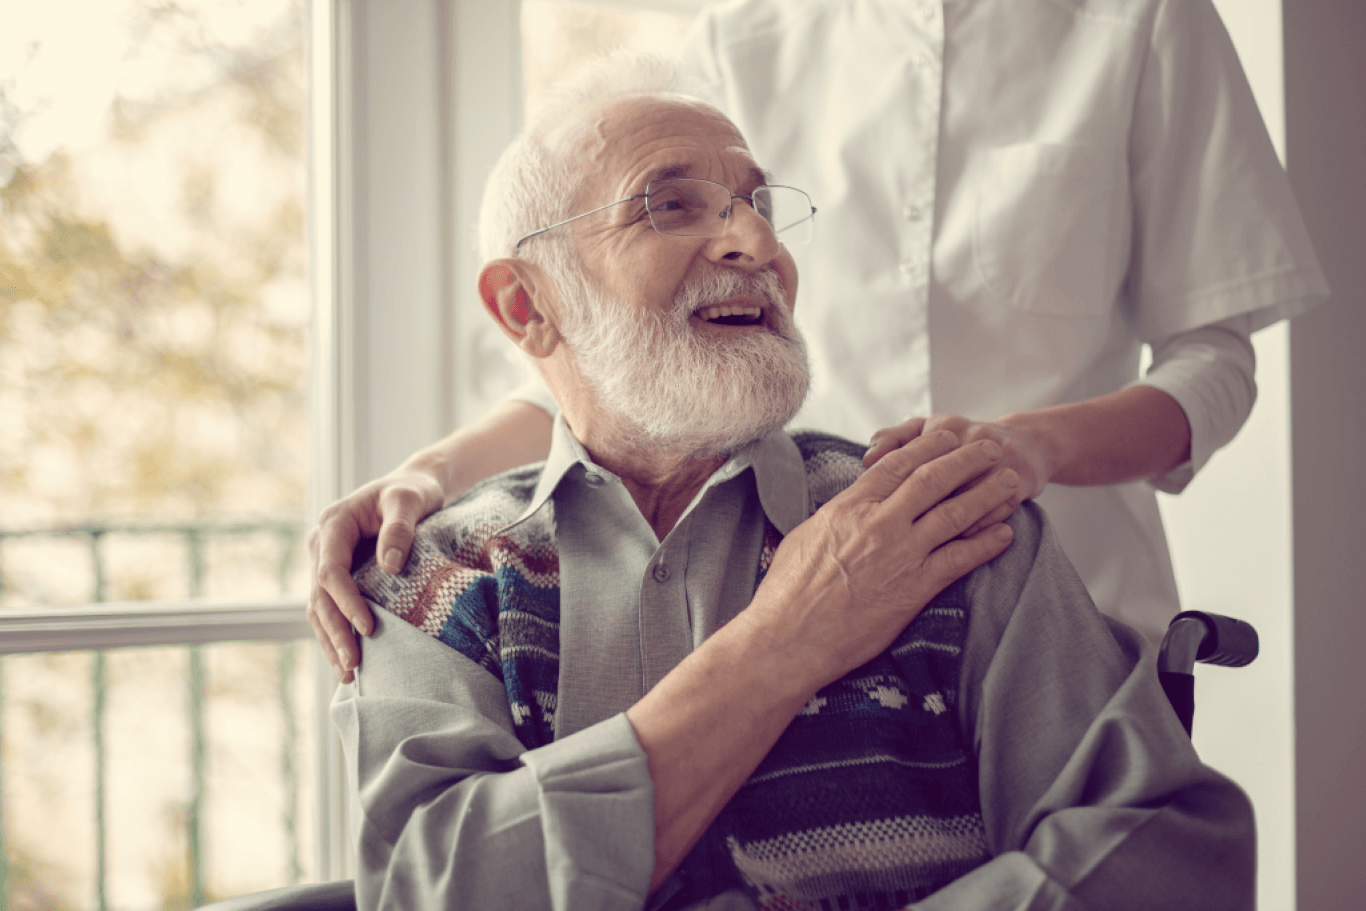 Elderly patient pleasantly engaging with their caregiver